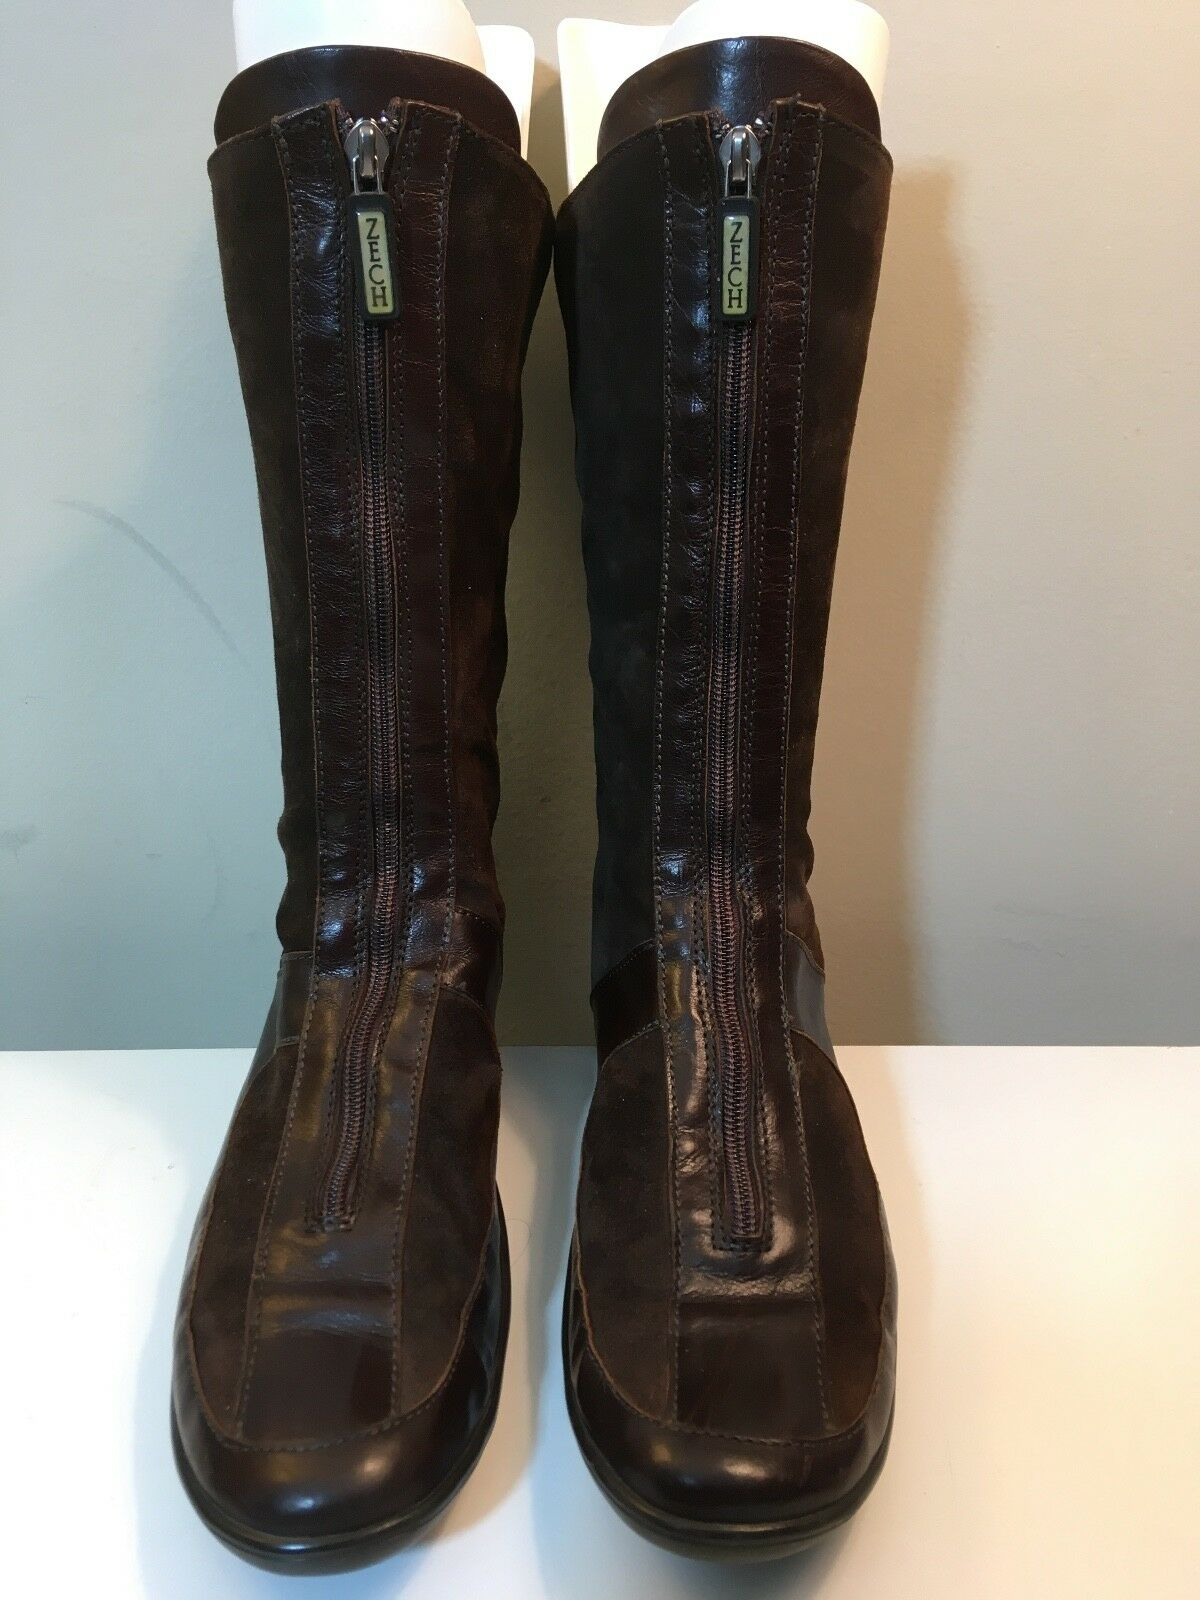 Women's Richard Zech Brown Suede Leather Lined Front Zip Boots Size 39.5